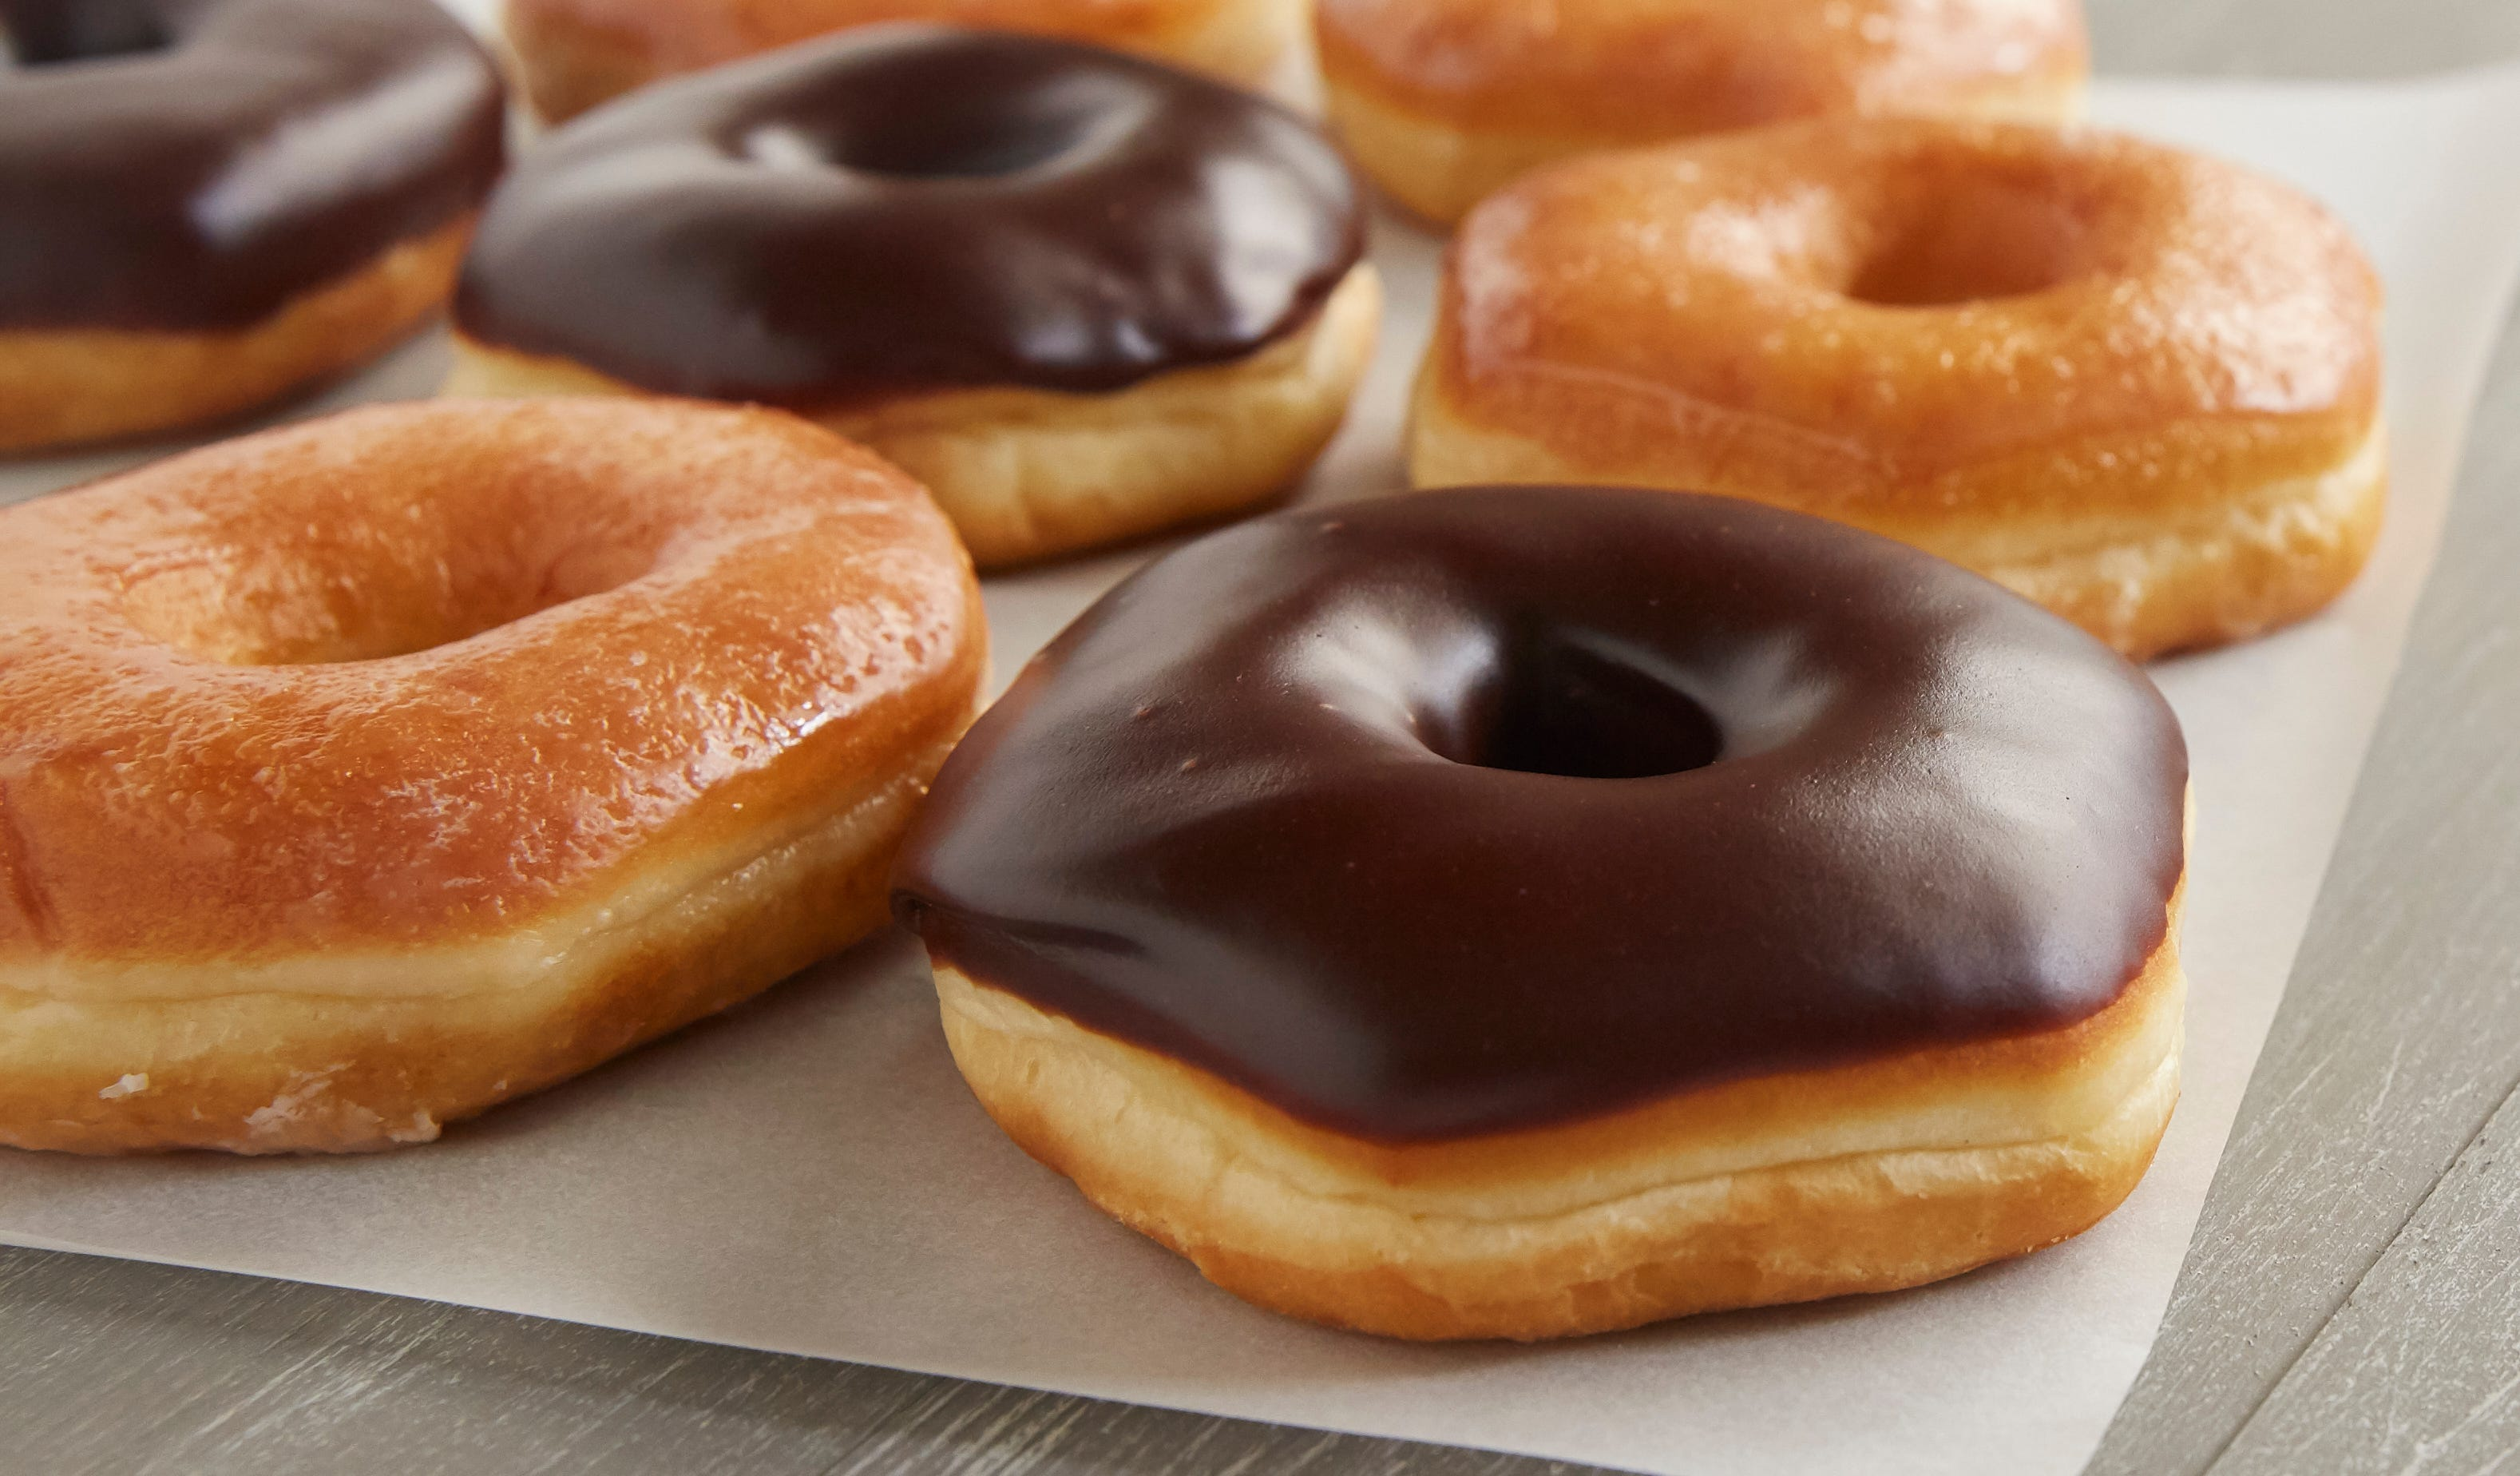 Where to get free donuts today for National Doughnut Day 2019